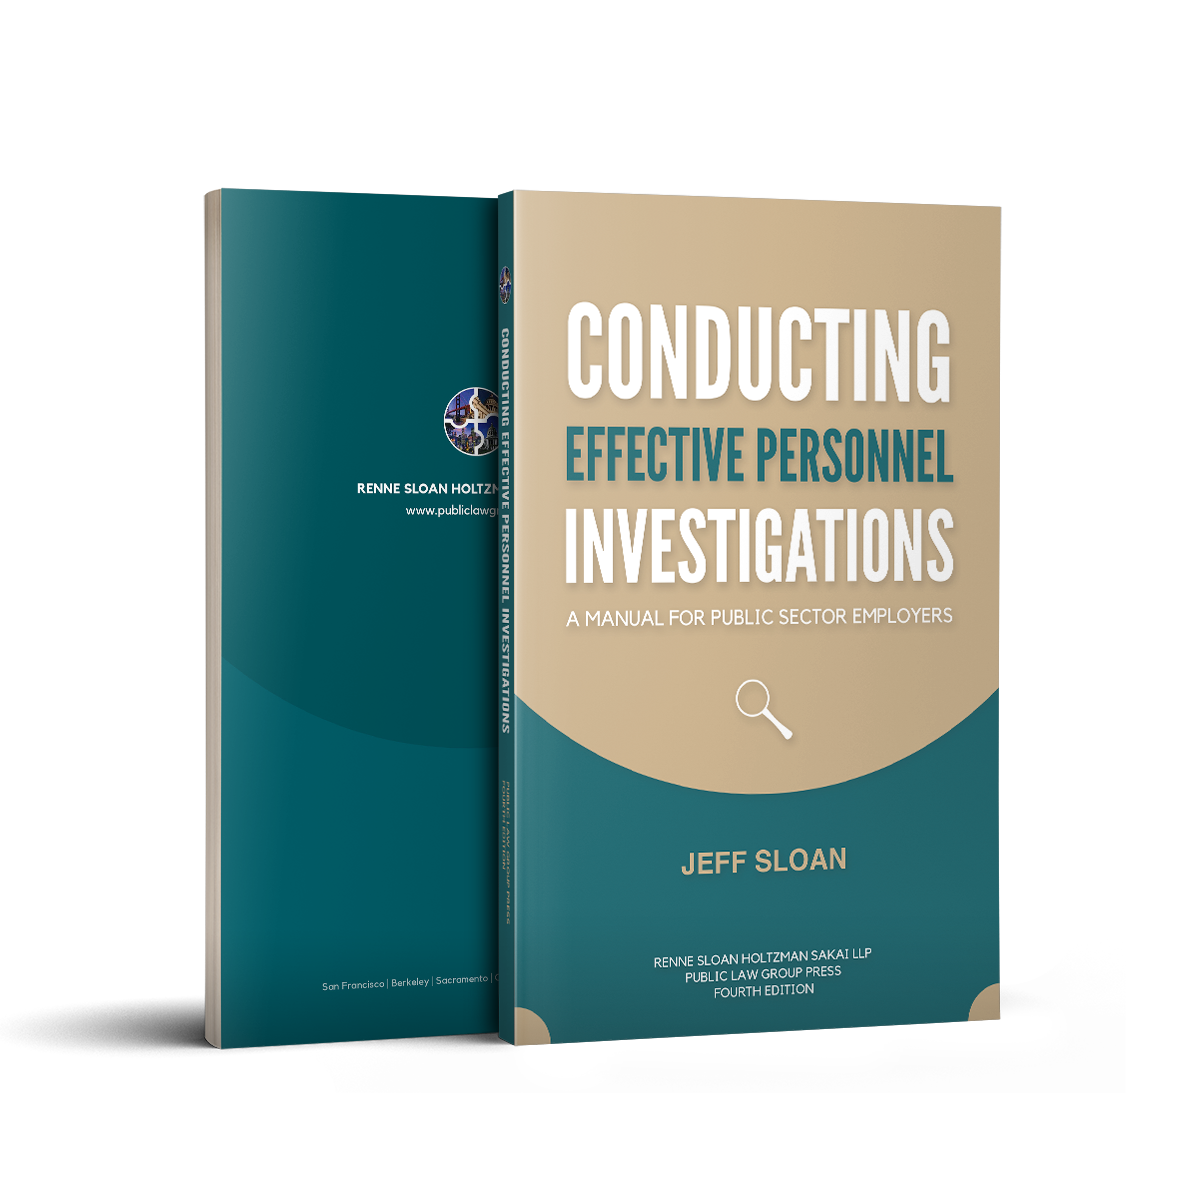 Conducting Effective Personnel Investigations